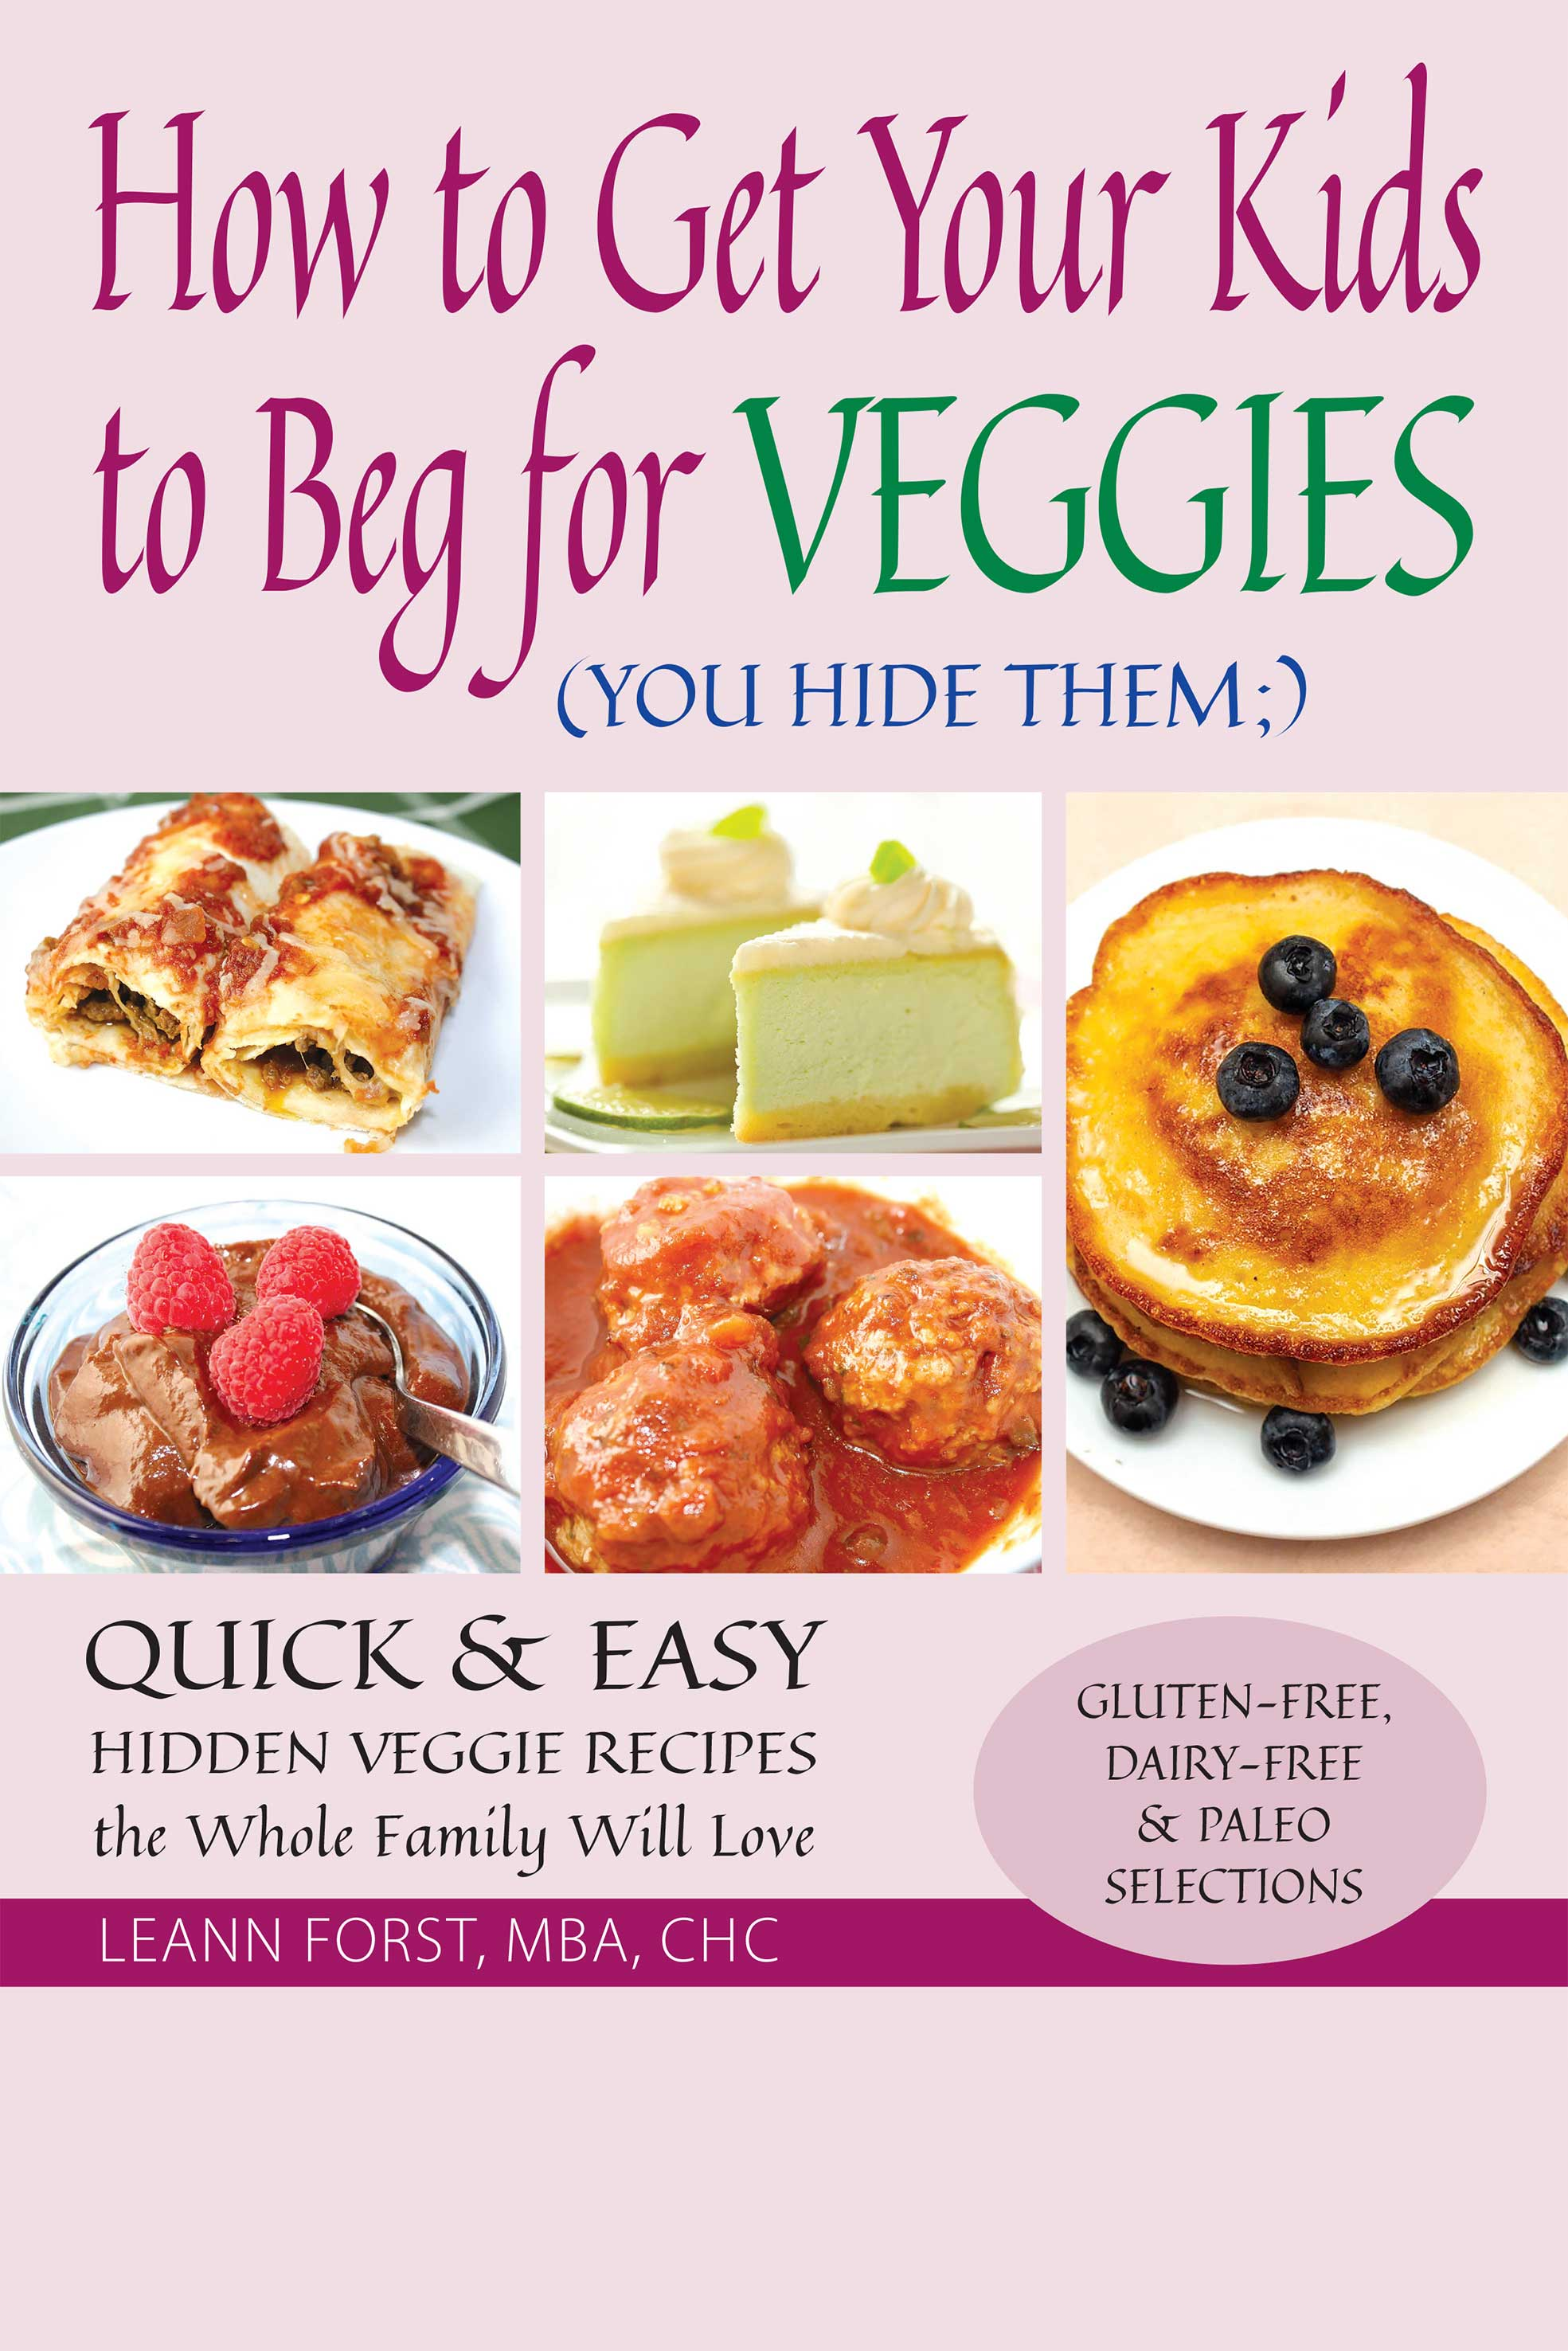 How to Get Your Kids to Beg for Veggies Book Cover